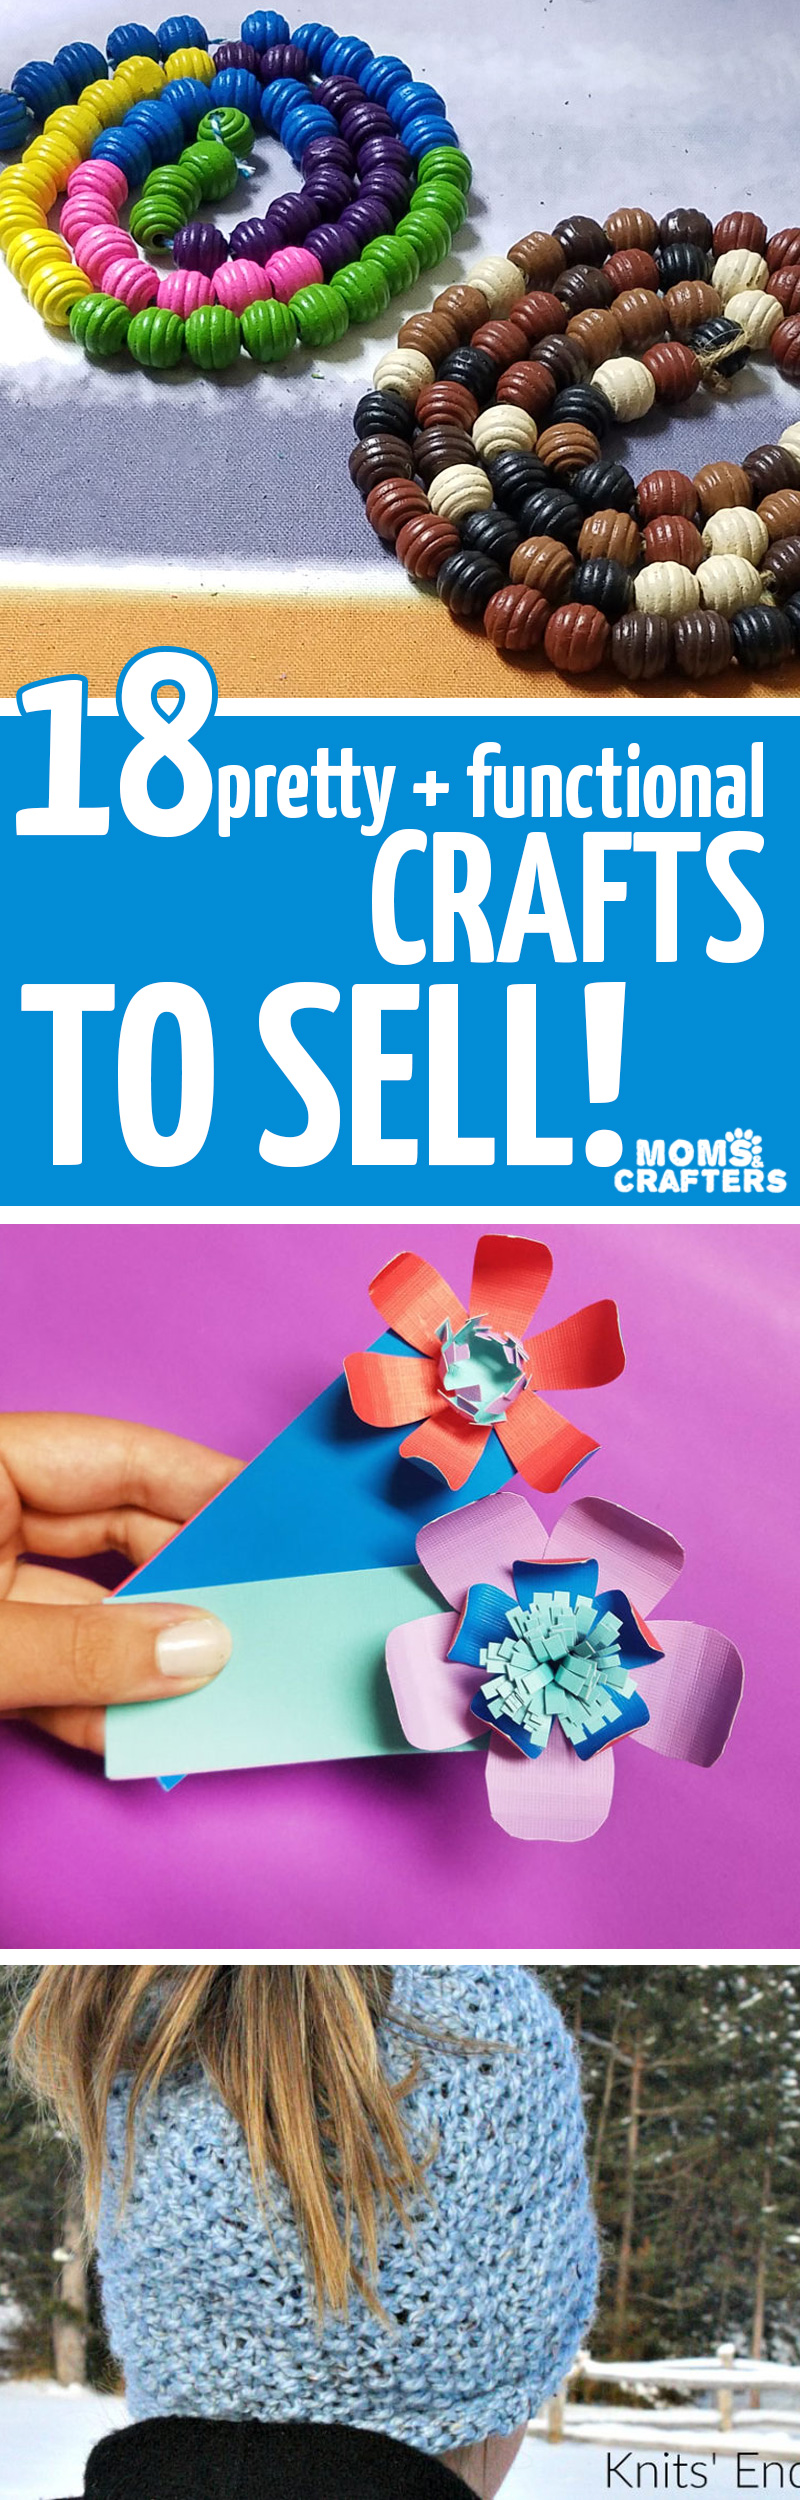 18 Things To Make And Sell At Home